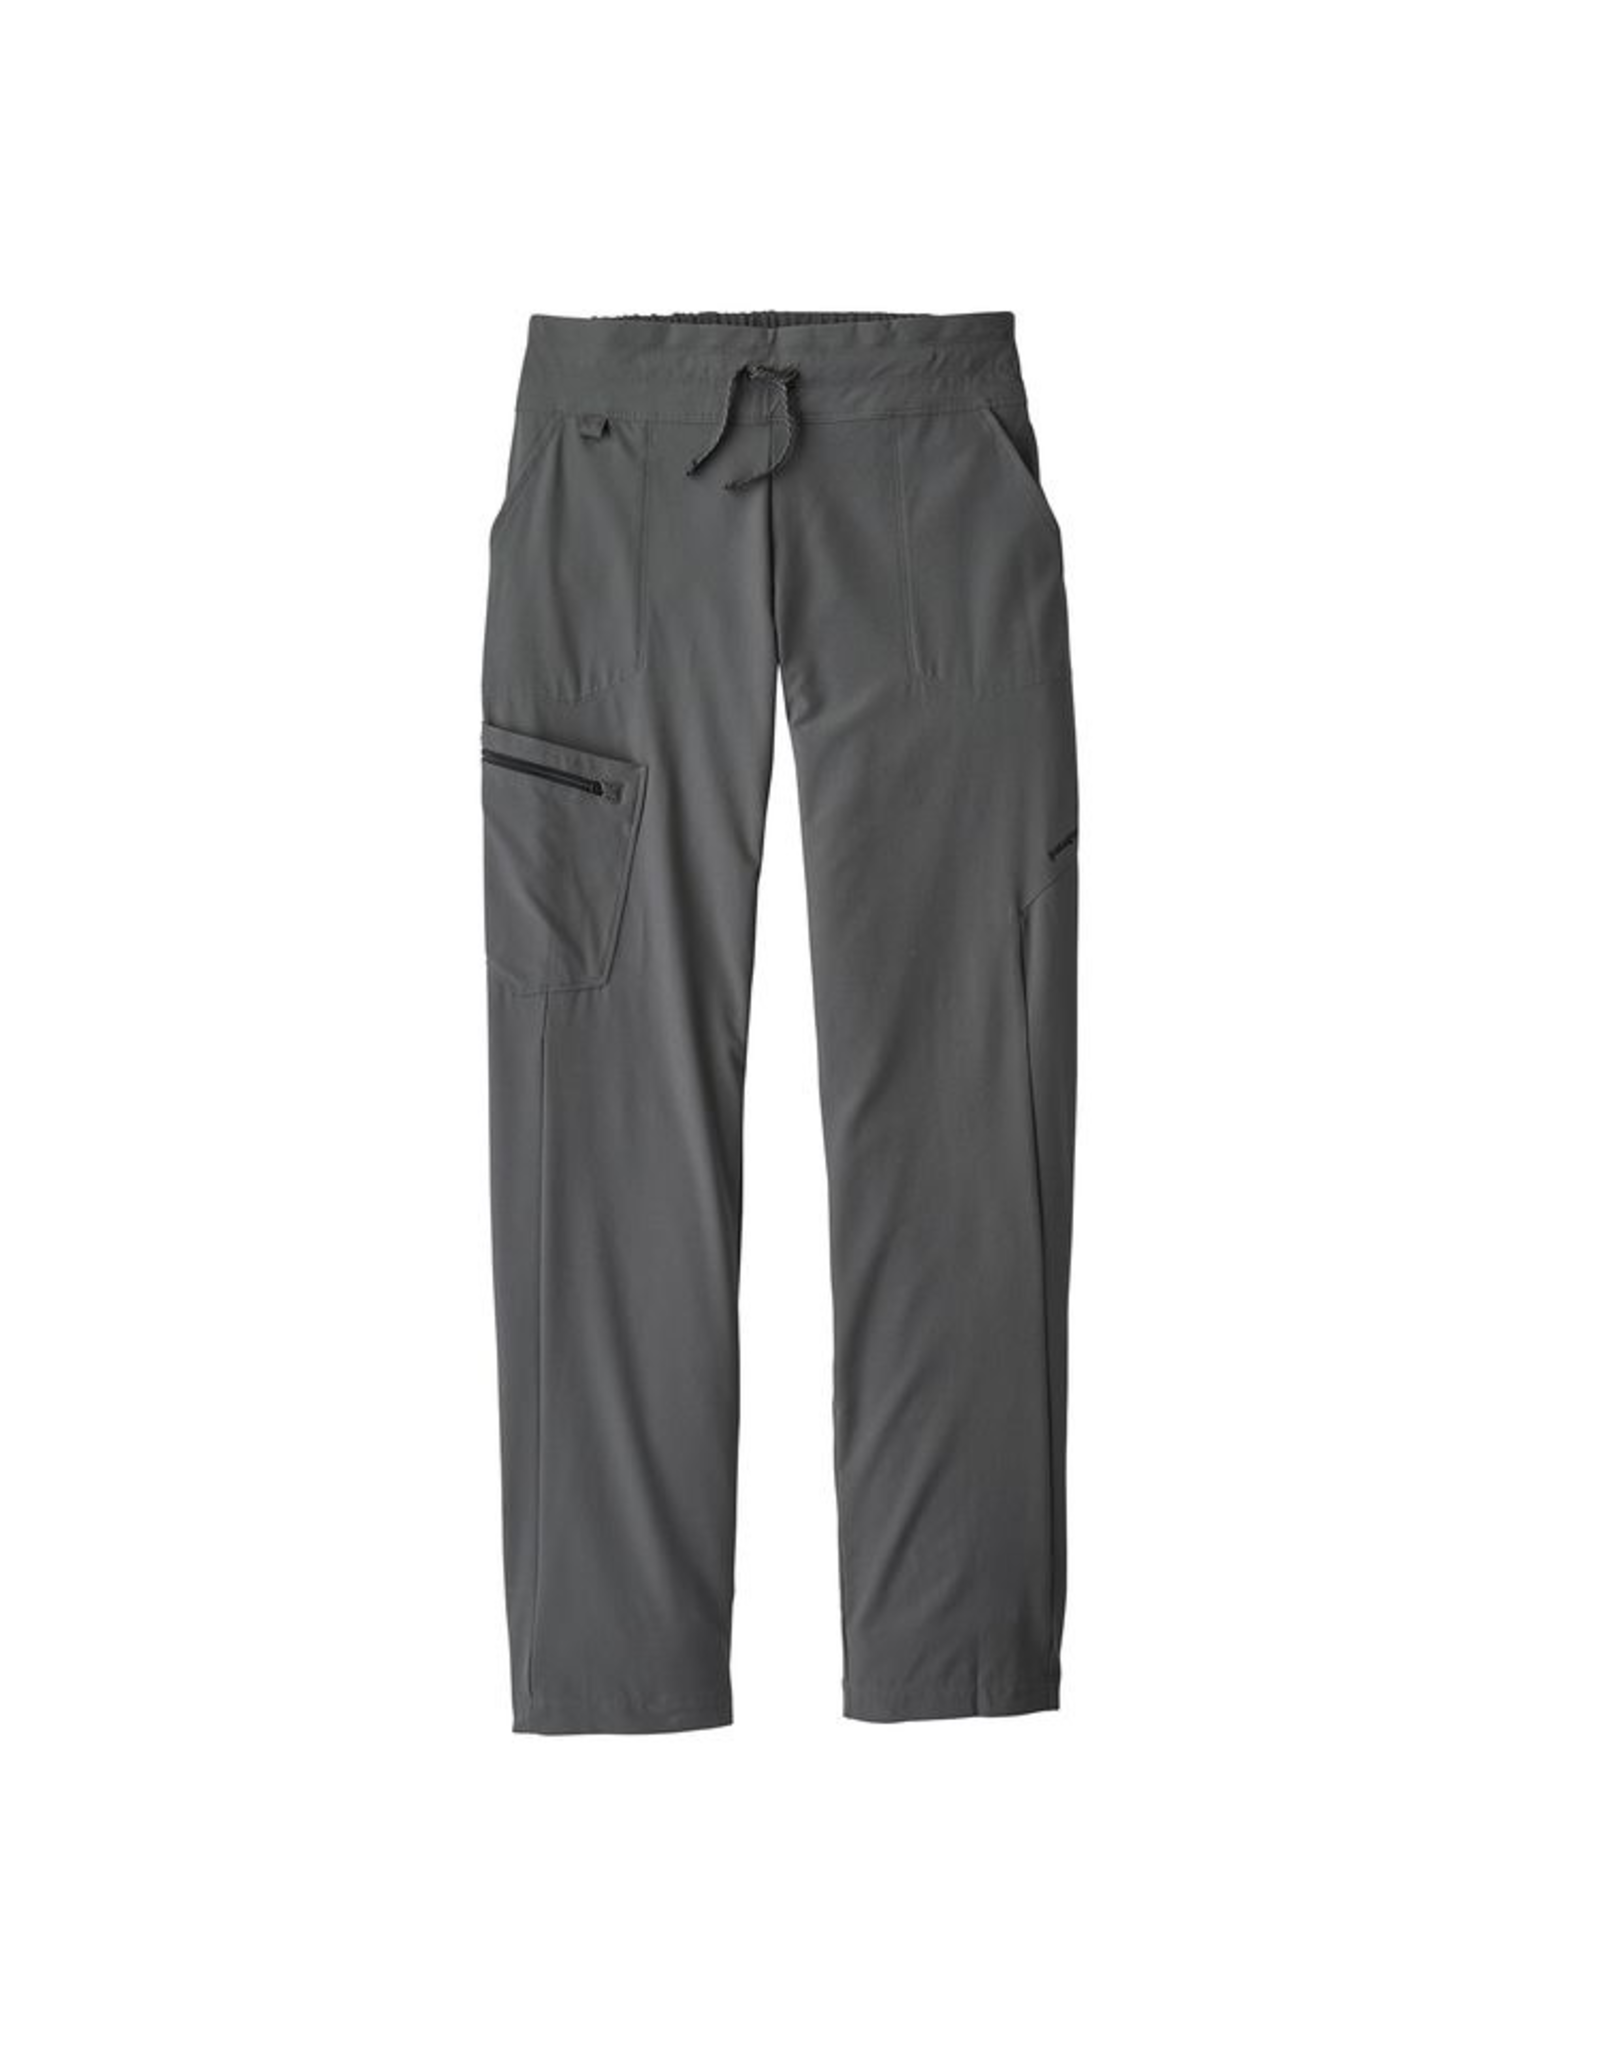 Patagonia Women's Fall River Comfort Stretch Pants